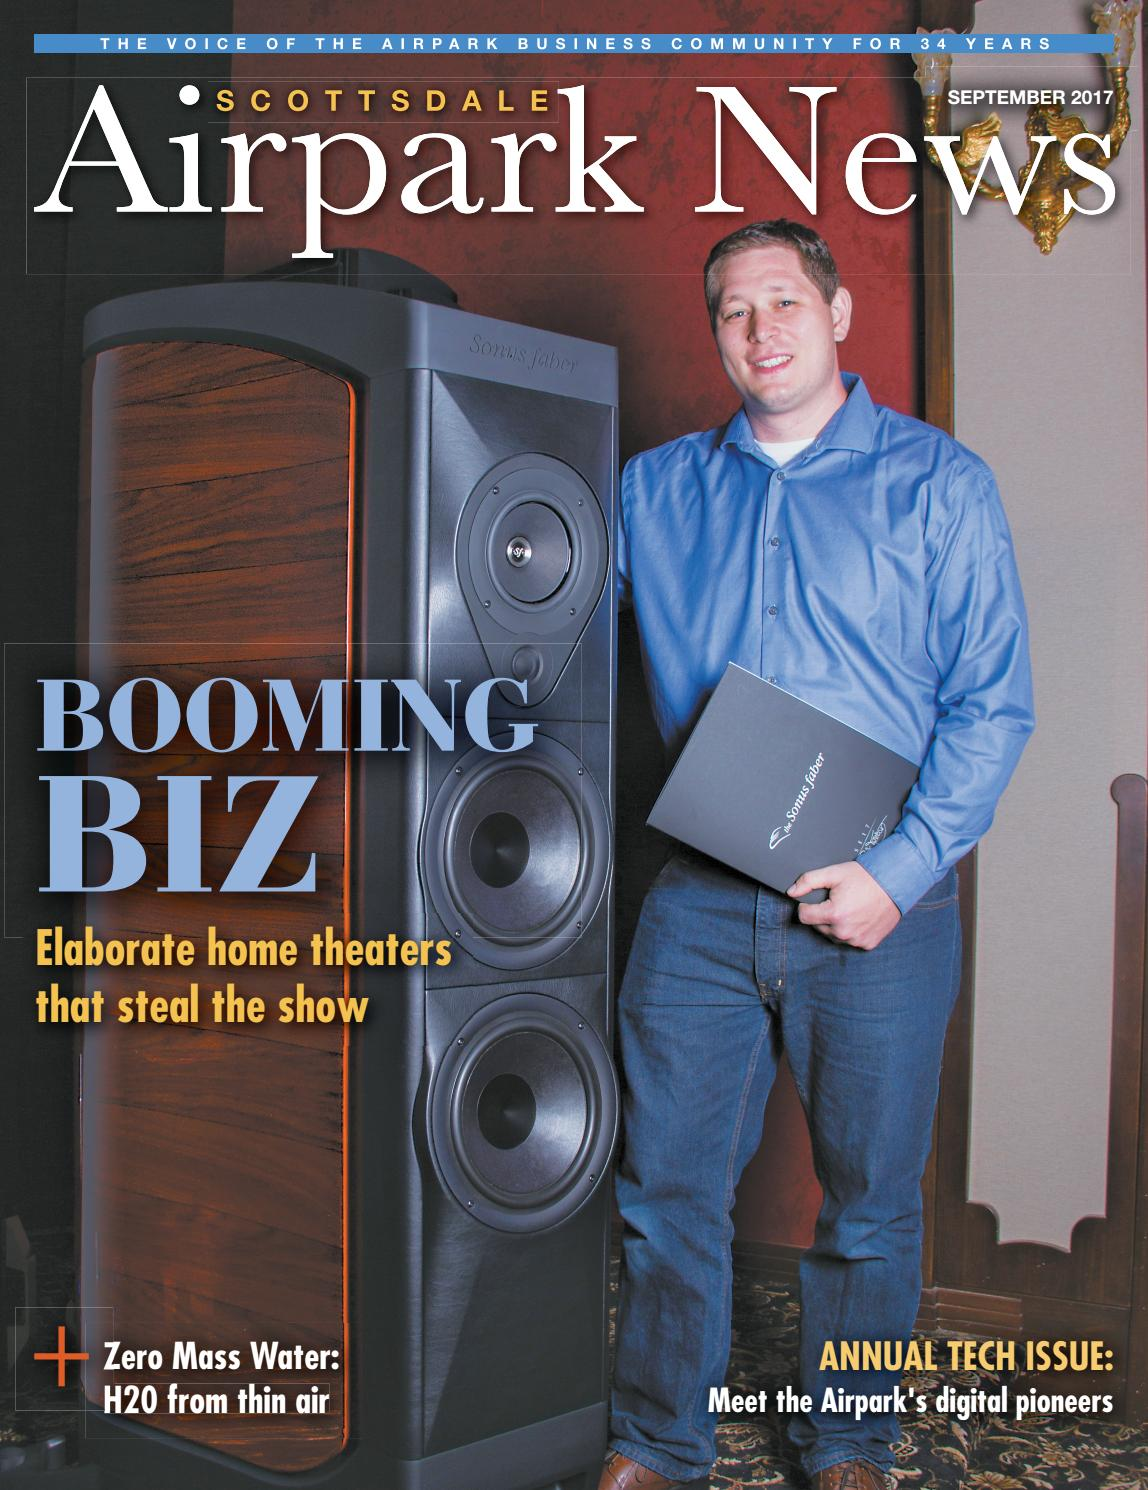 Scottsdale Airpark News September 2017 By Times Media Group Issuu